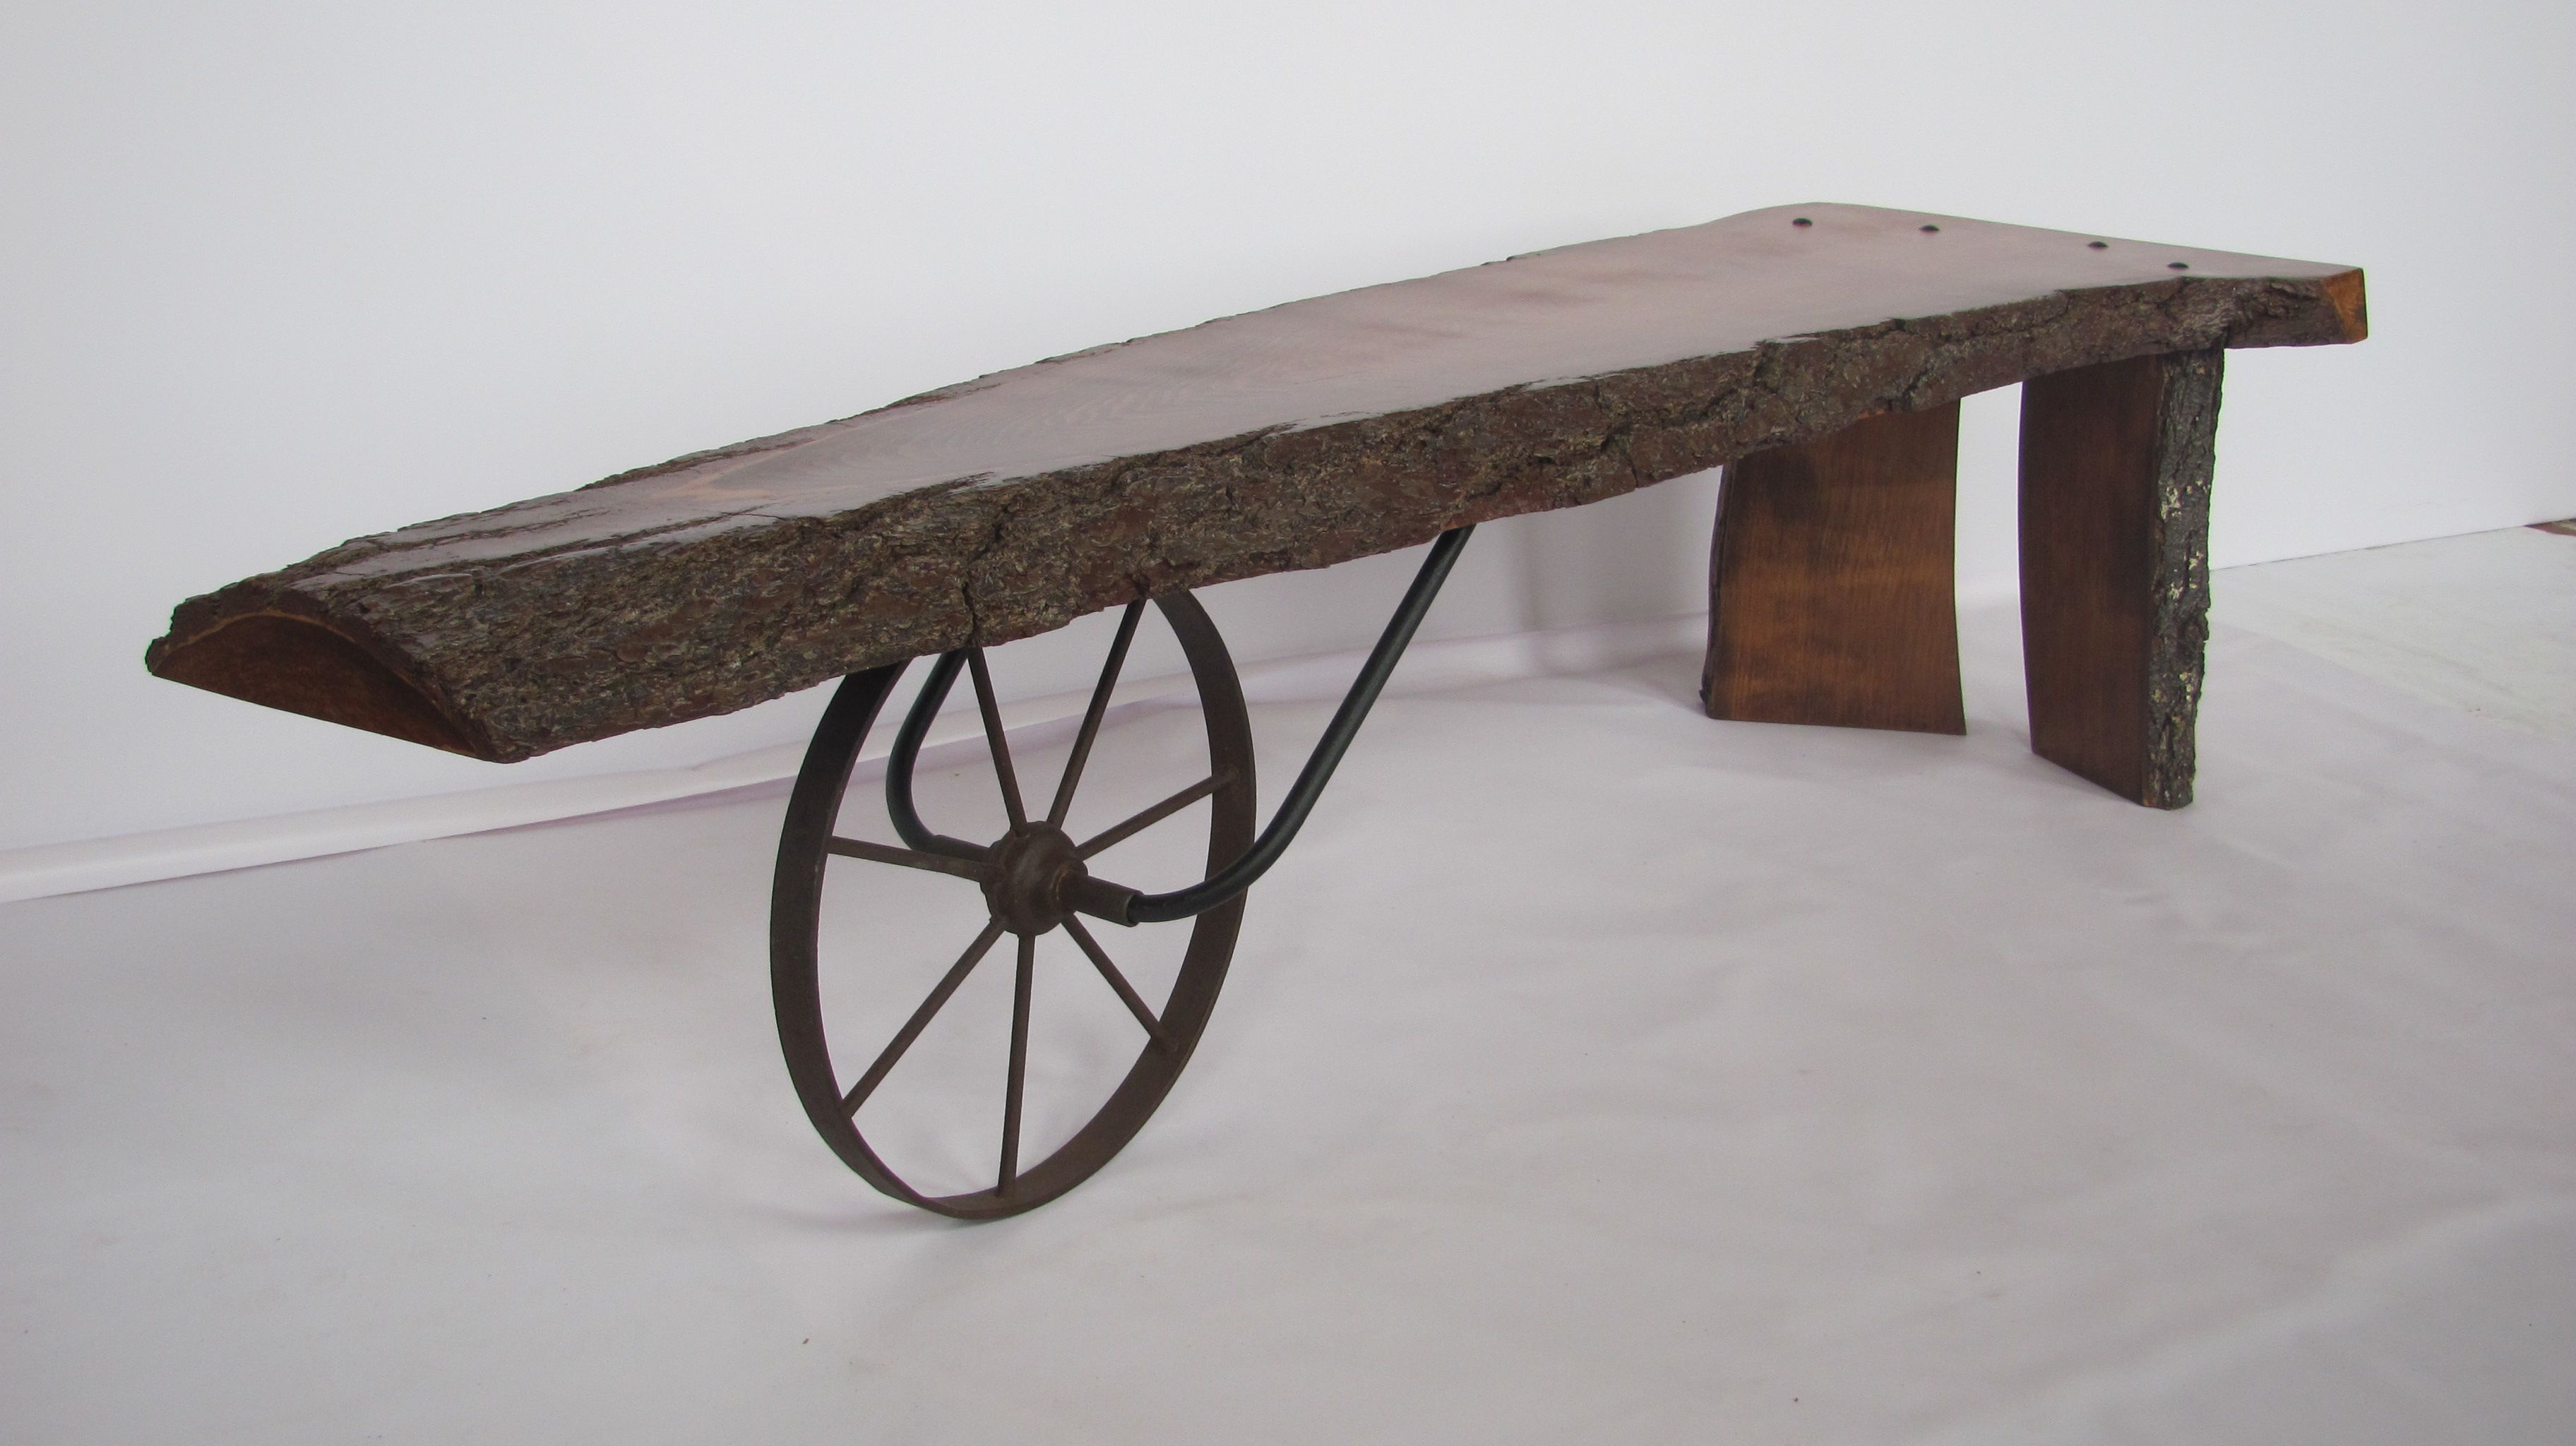 Unique Rustic Table Made from Wagon Wheel and Tree Stumps